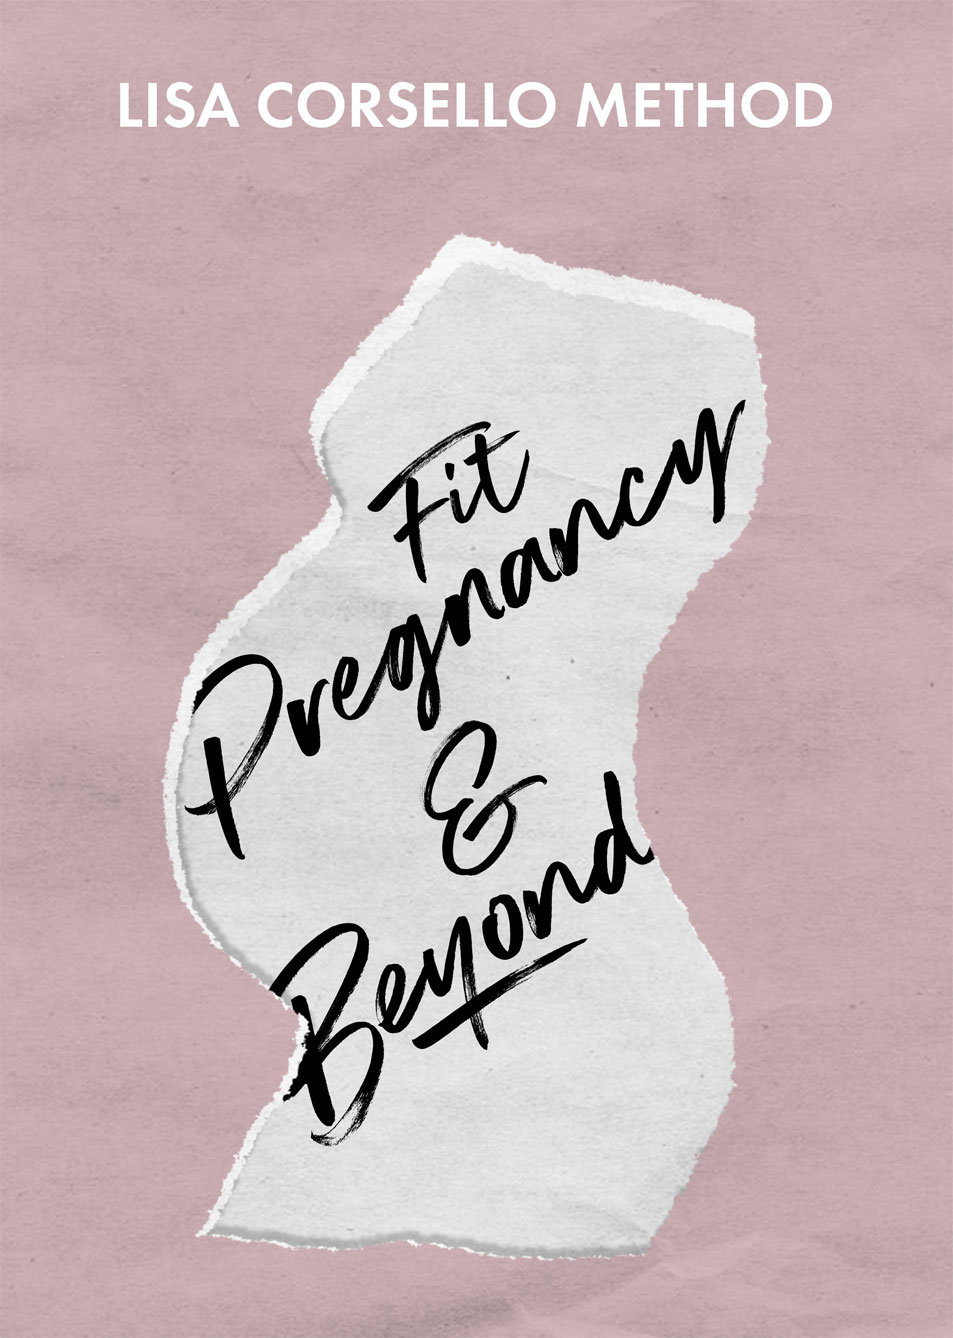 Available Now! Lisa's Pregnancy and Fitness E-book and Video Collection - You'll get honest, real talk about what's happening with your body, exercise plans, and mindset for every trimester and the 3 month period following delivery AND you'll get 4 workout videos for each stage of your pregnancy and recovery for only $24.99Click here to buy